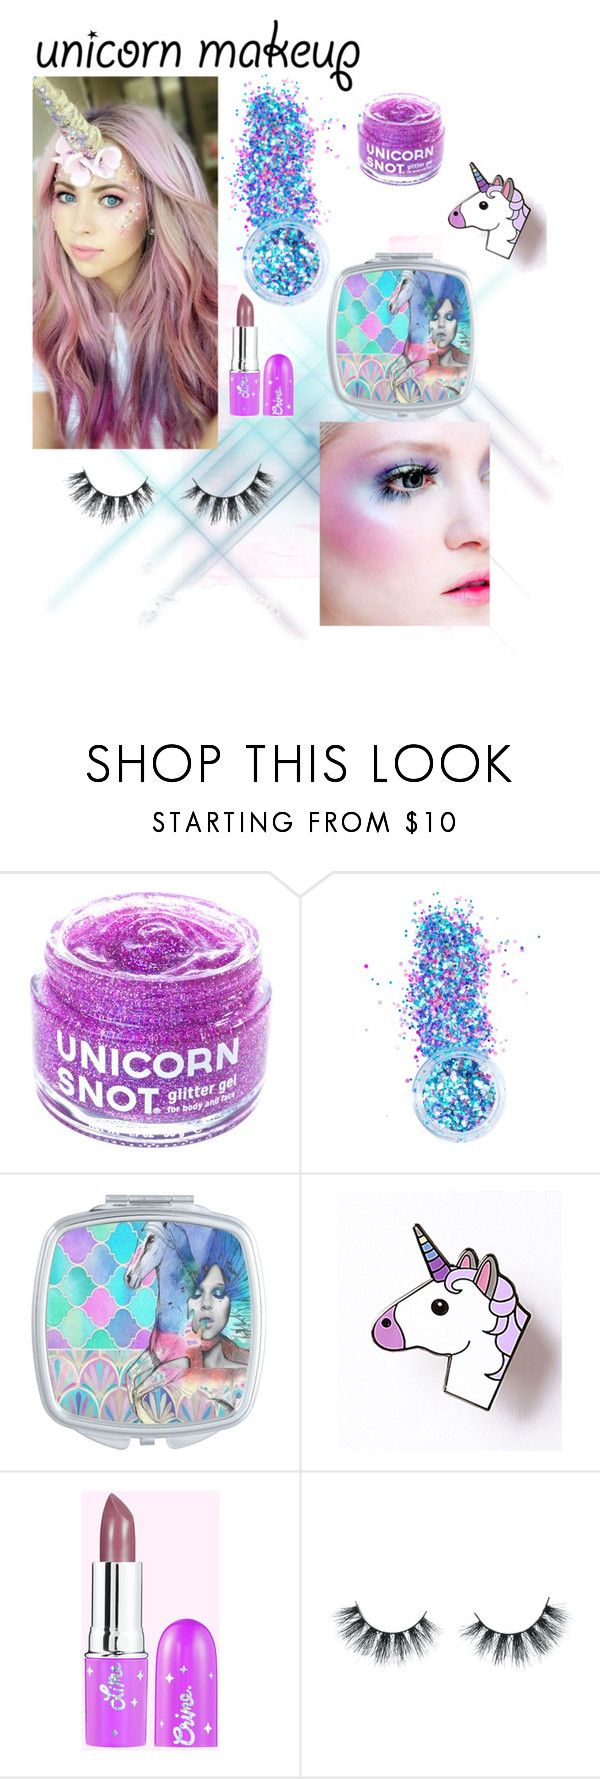 """""""🦄 4life"""" by gabriella-sophia ❤ liked on Polyvore featuring beauty, FCTRY, In Your Dreams and Unicorn Lashes"""